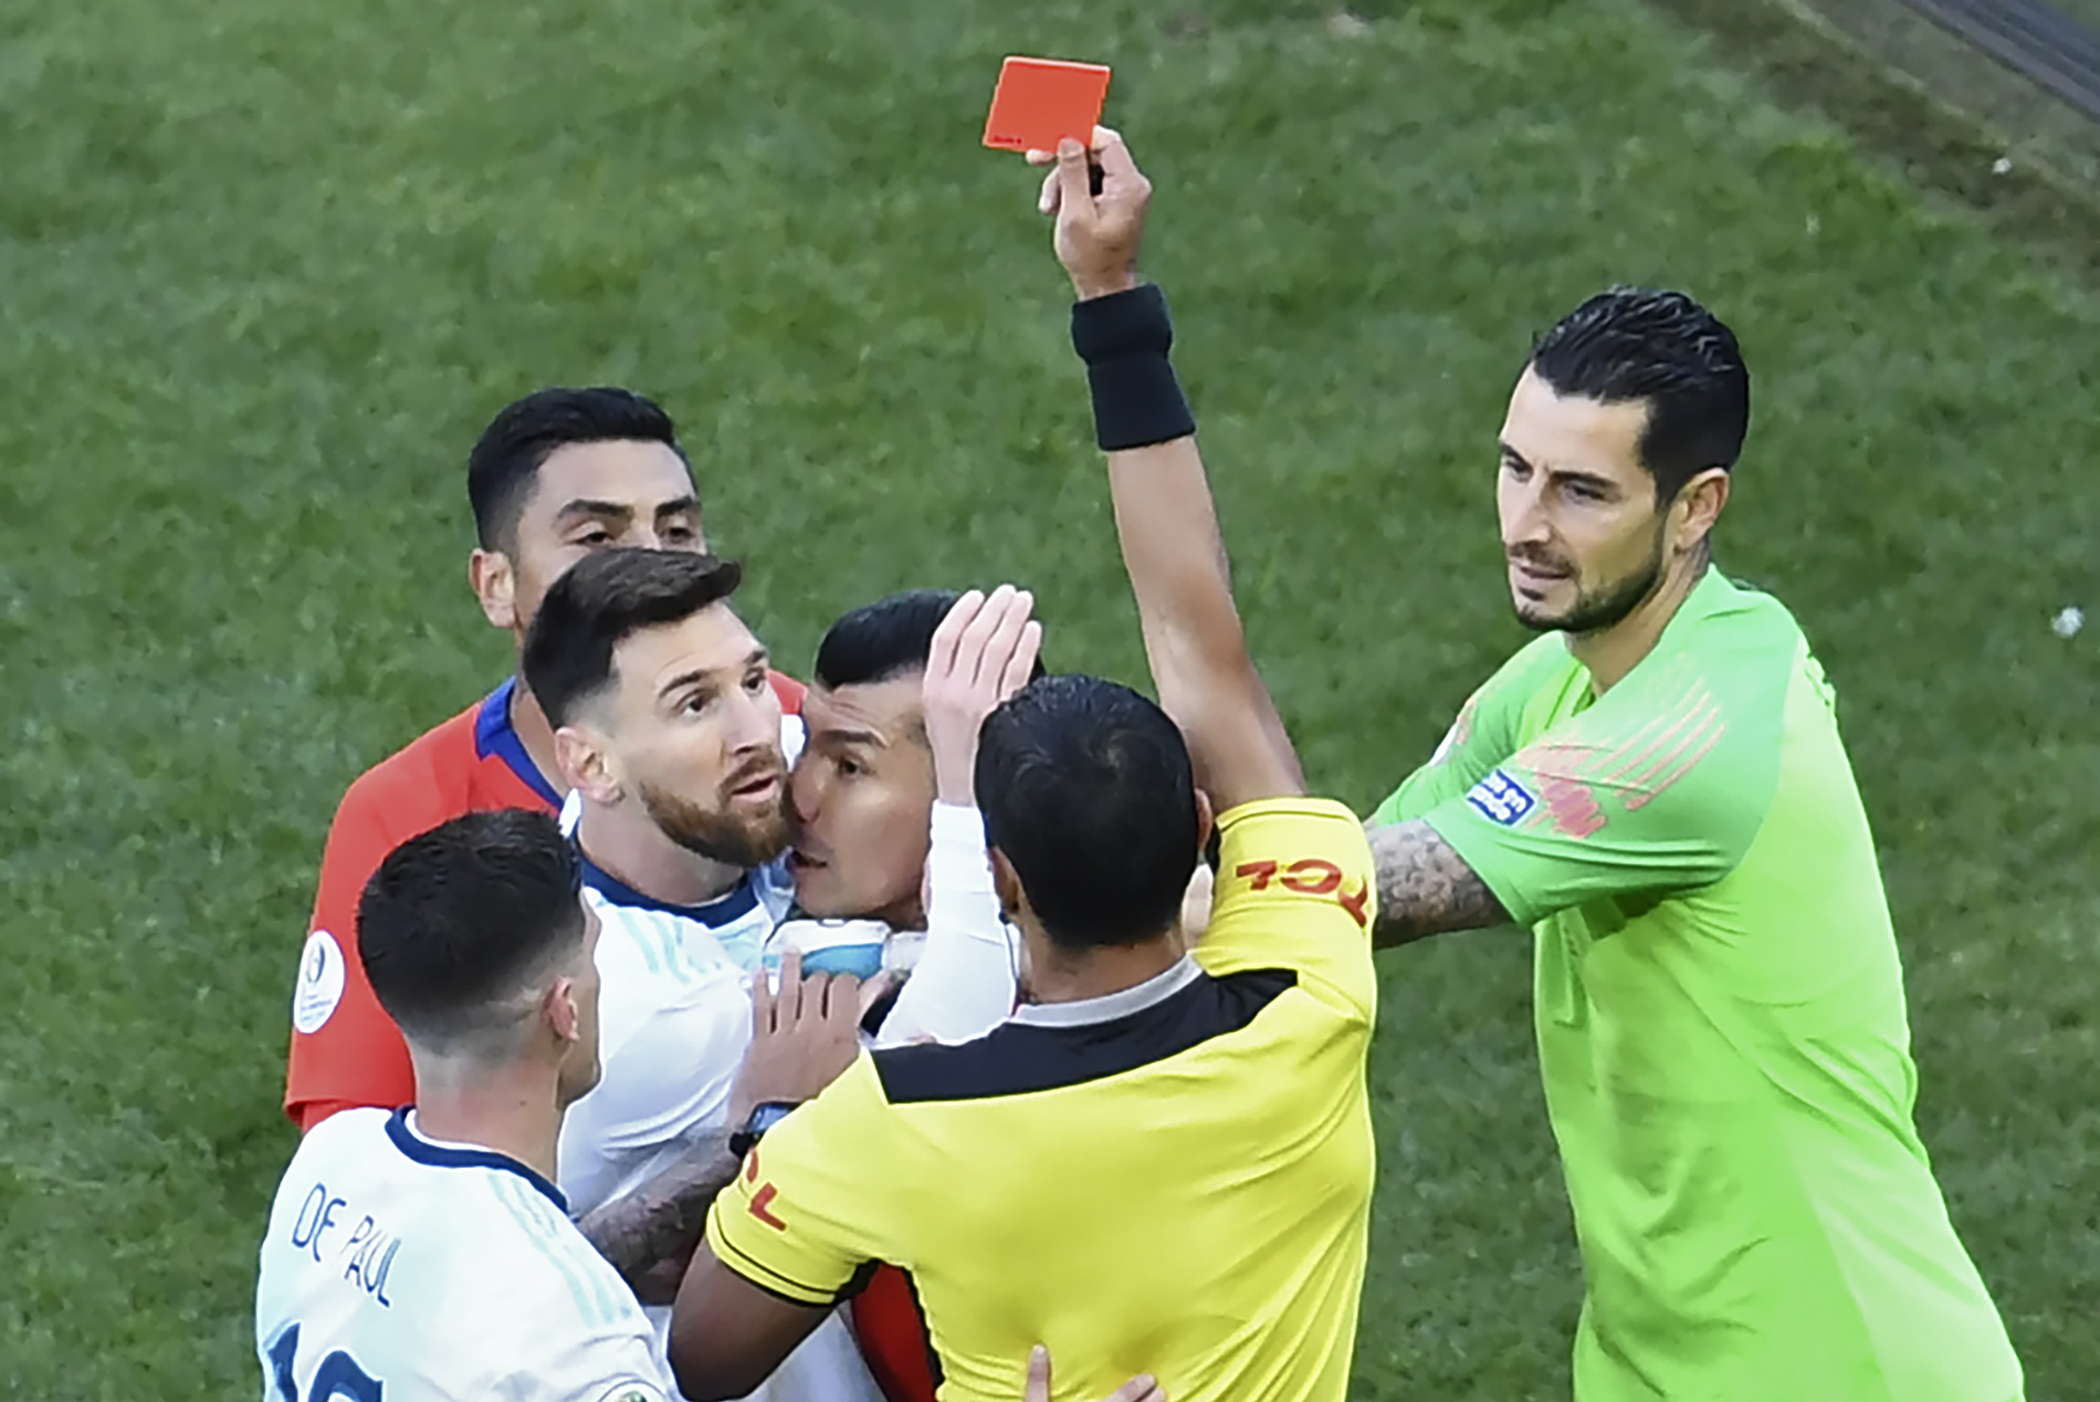 Lionel Messi Fined 1 5k For Red Card Vs Chile In Copa America 3rd Place Match Bleacher Report Latest News Videos And Highlights